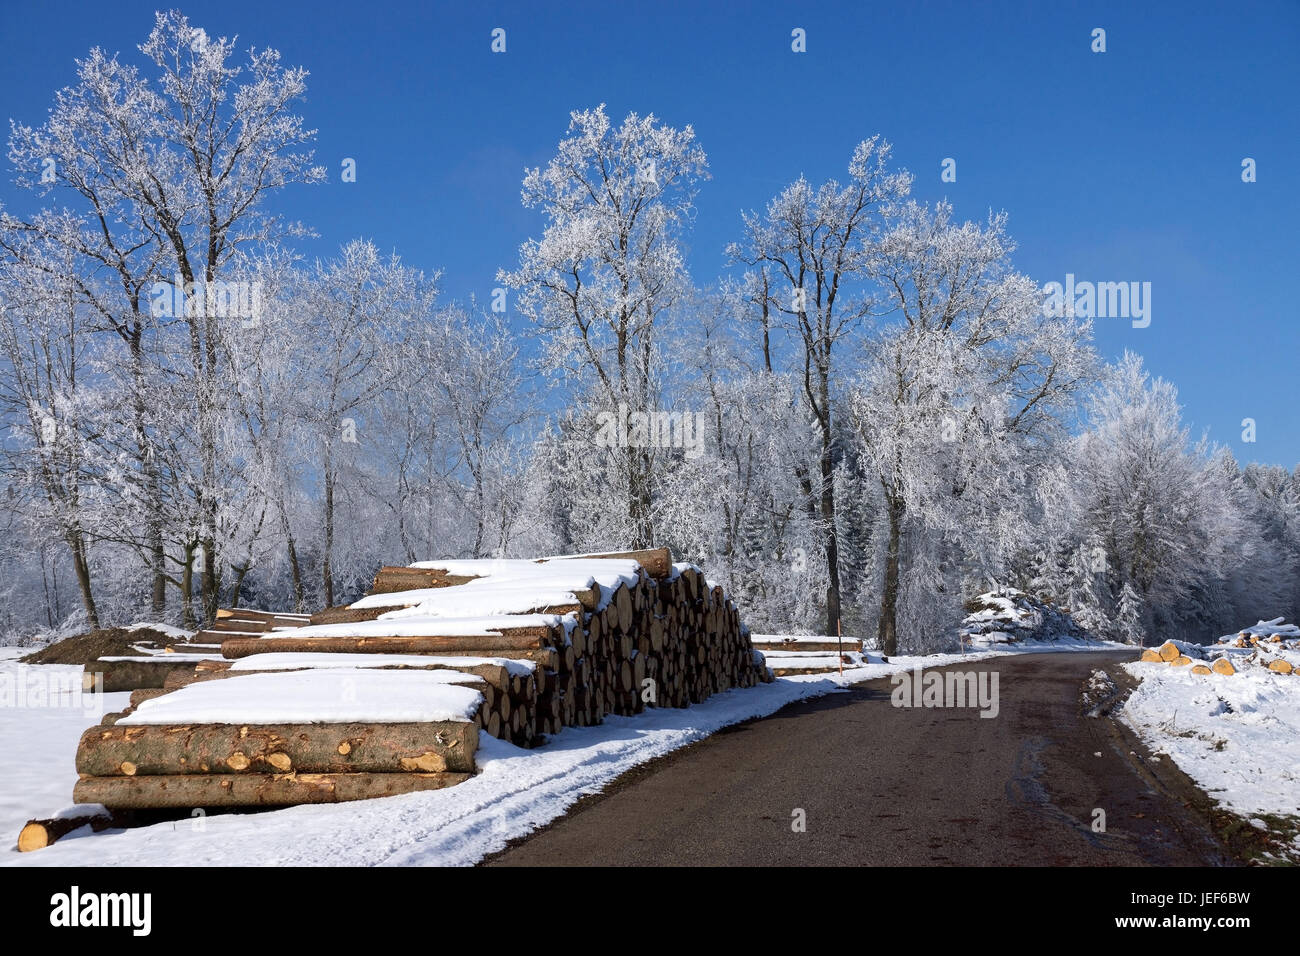 Felling in winter, wooden pile in the street edge., Holzeinschlag im Winter, Holzstapel am Strassenrand. Stock Photo